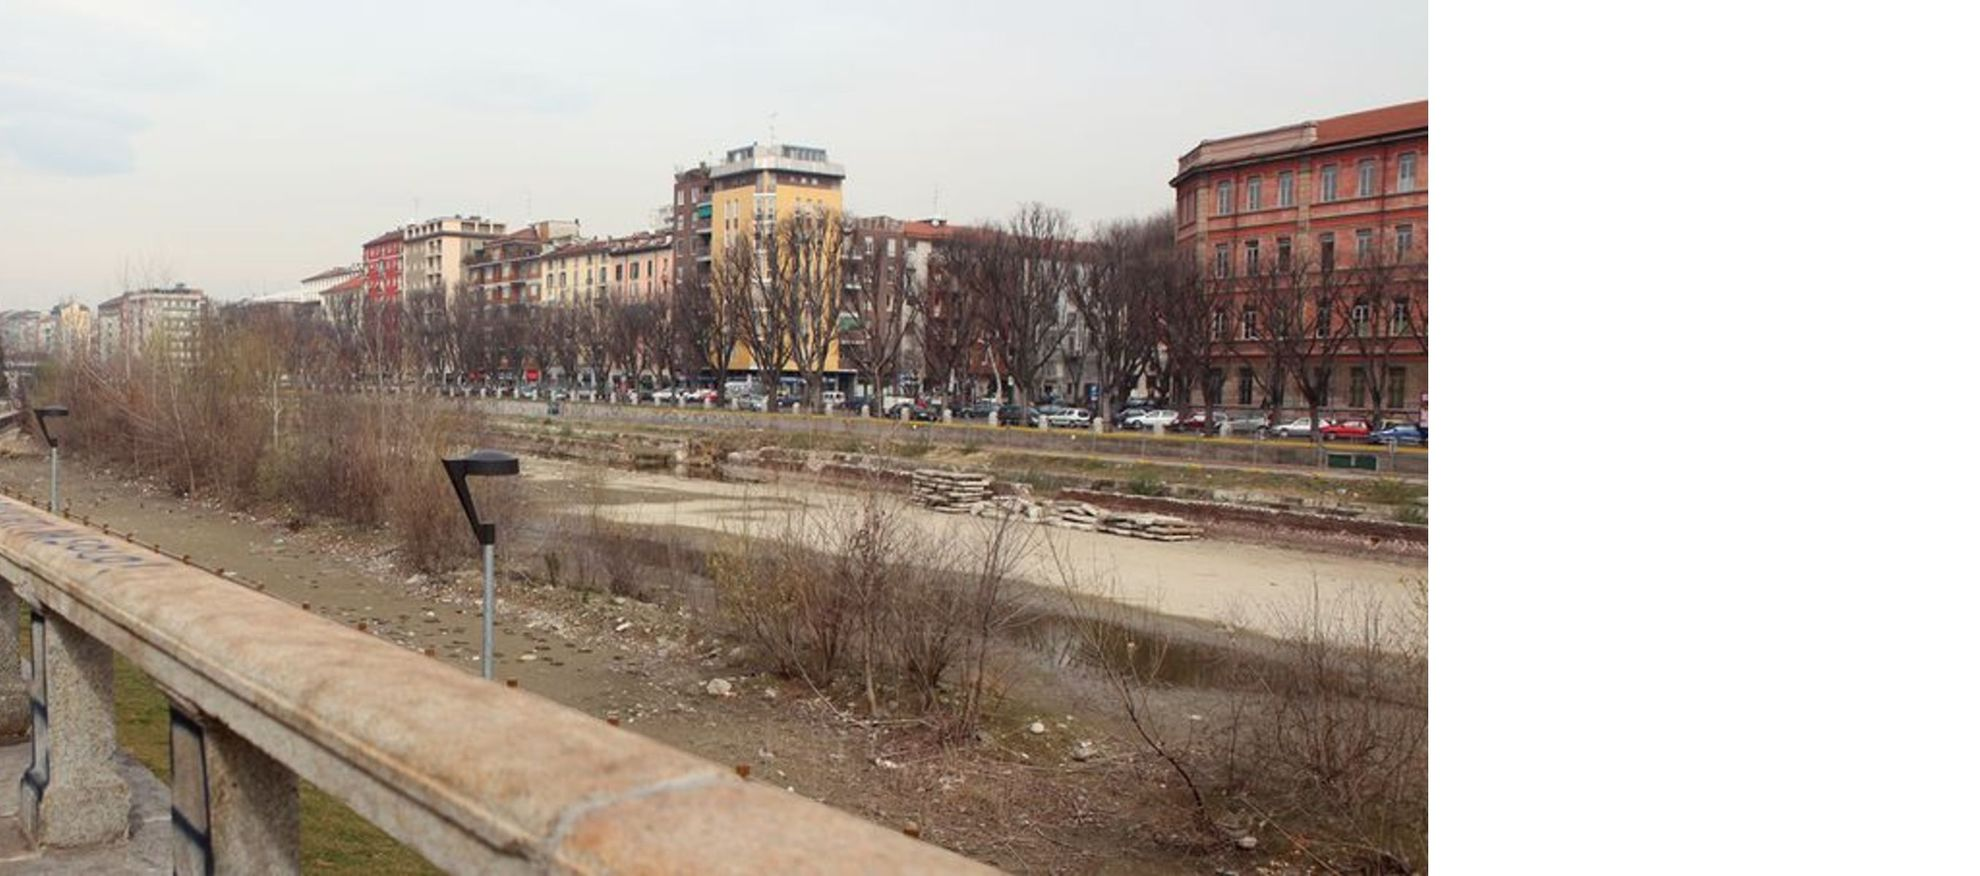 Milan and its Expo: revitalisation of the Darsena area